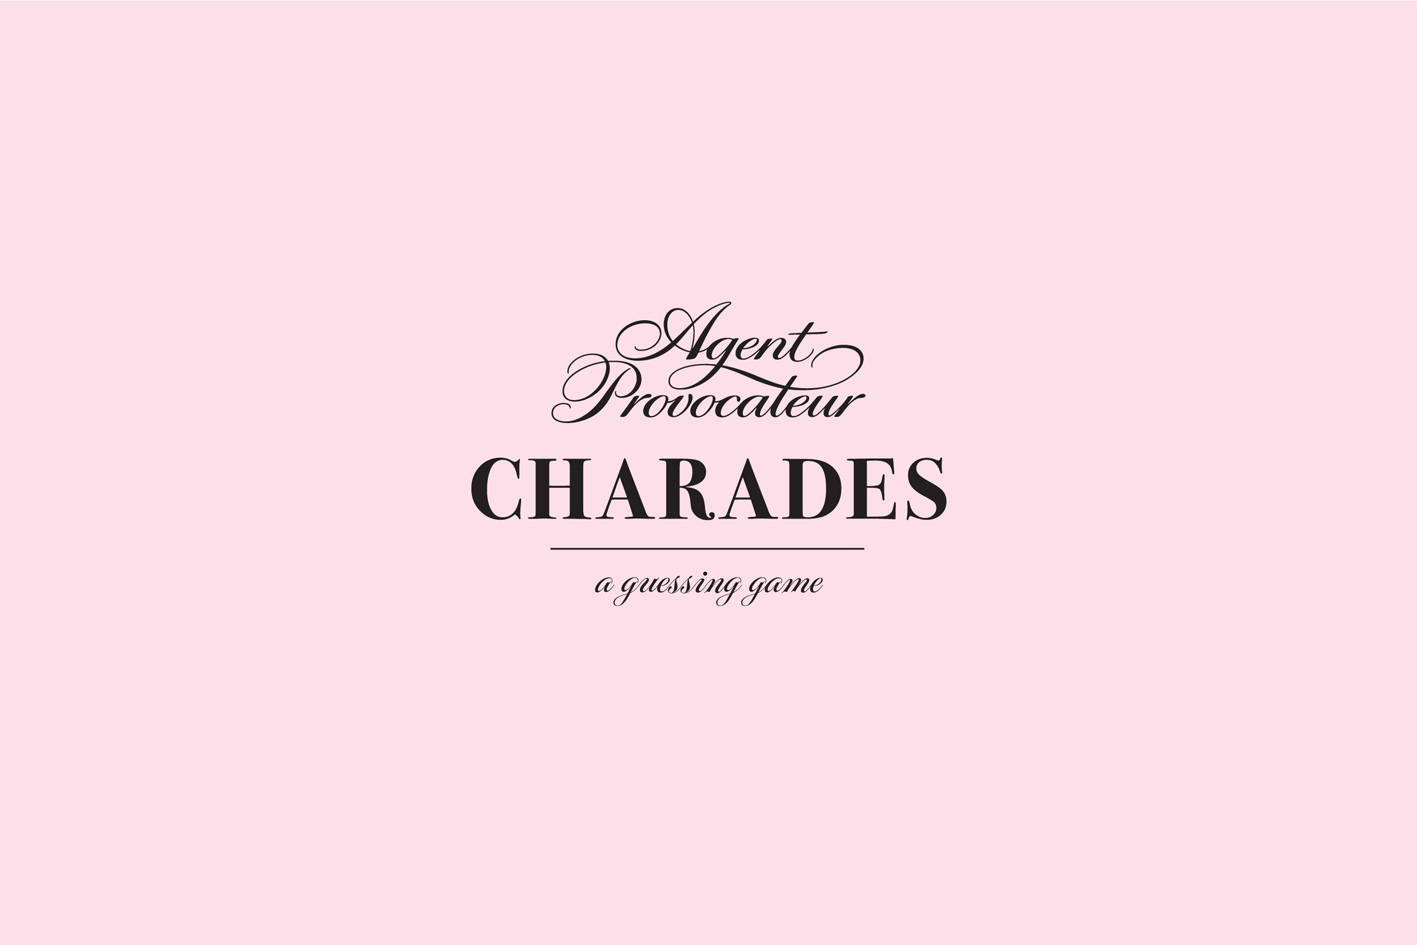 Agent Provocateur: Charades